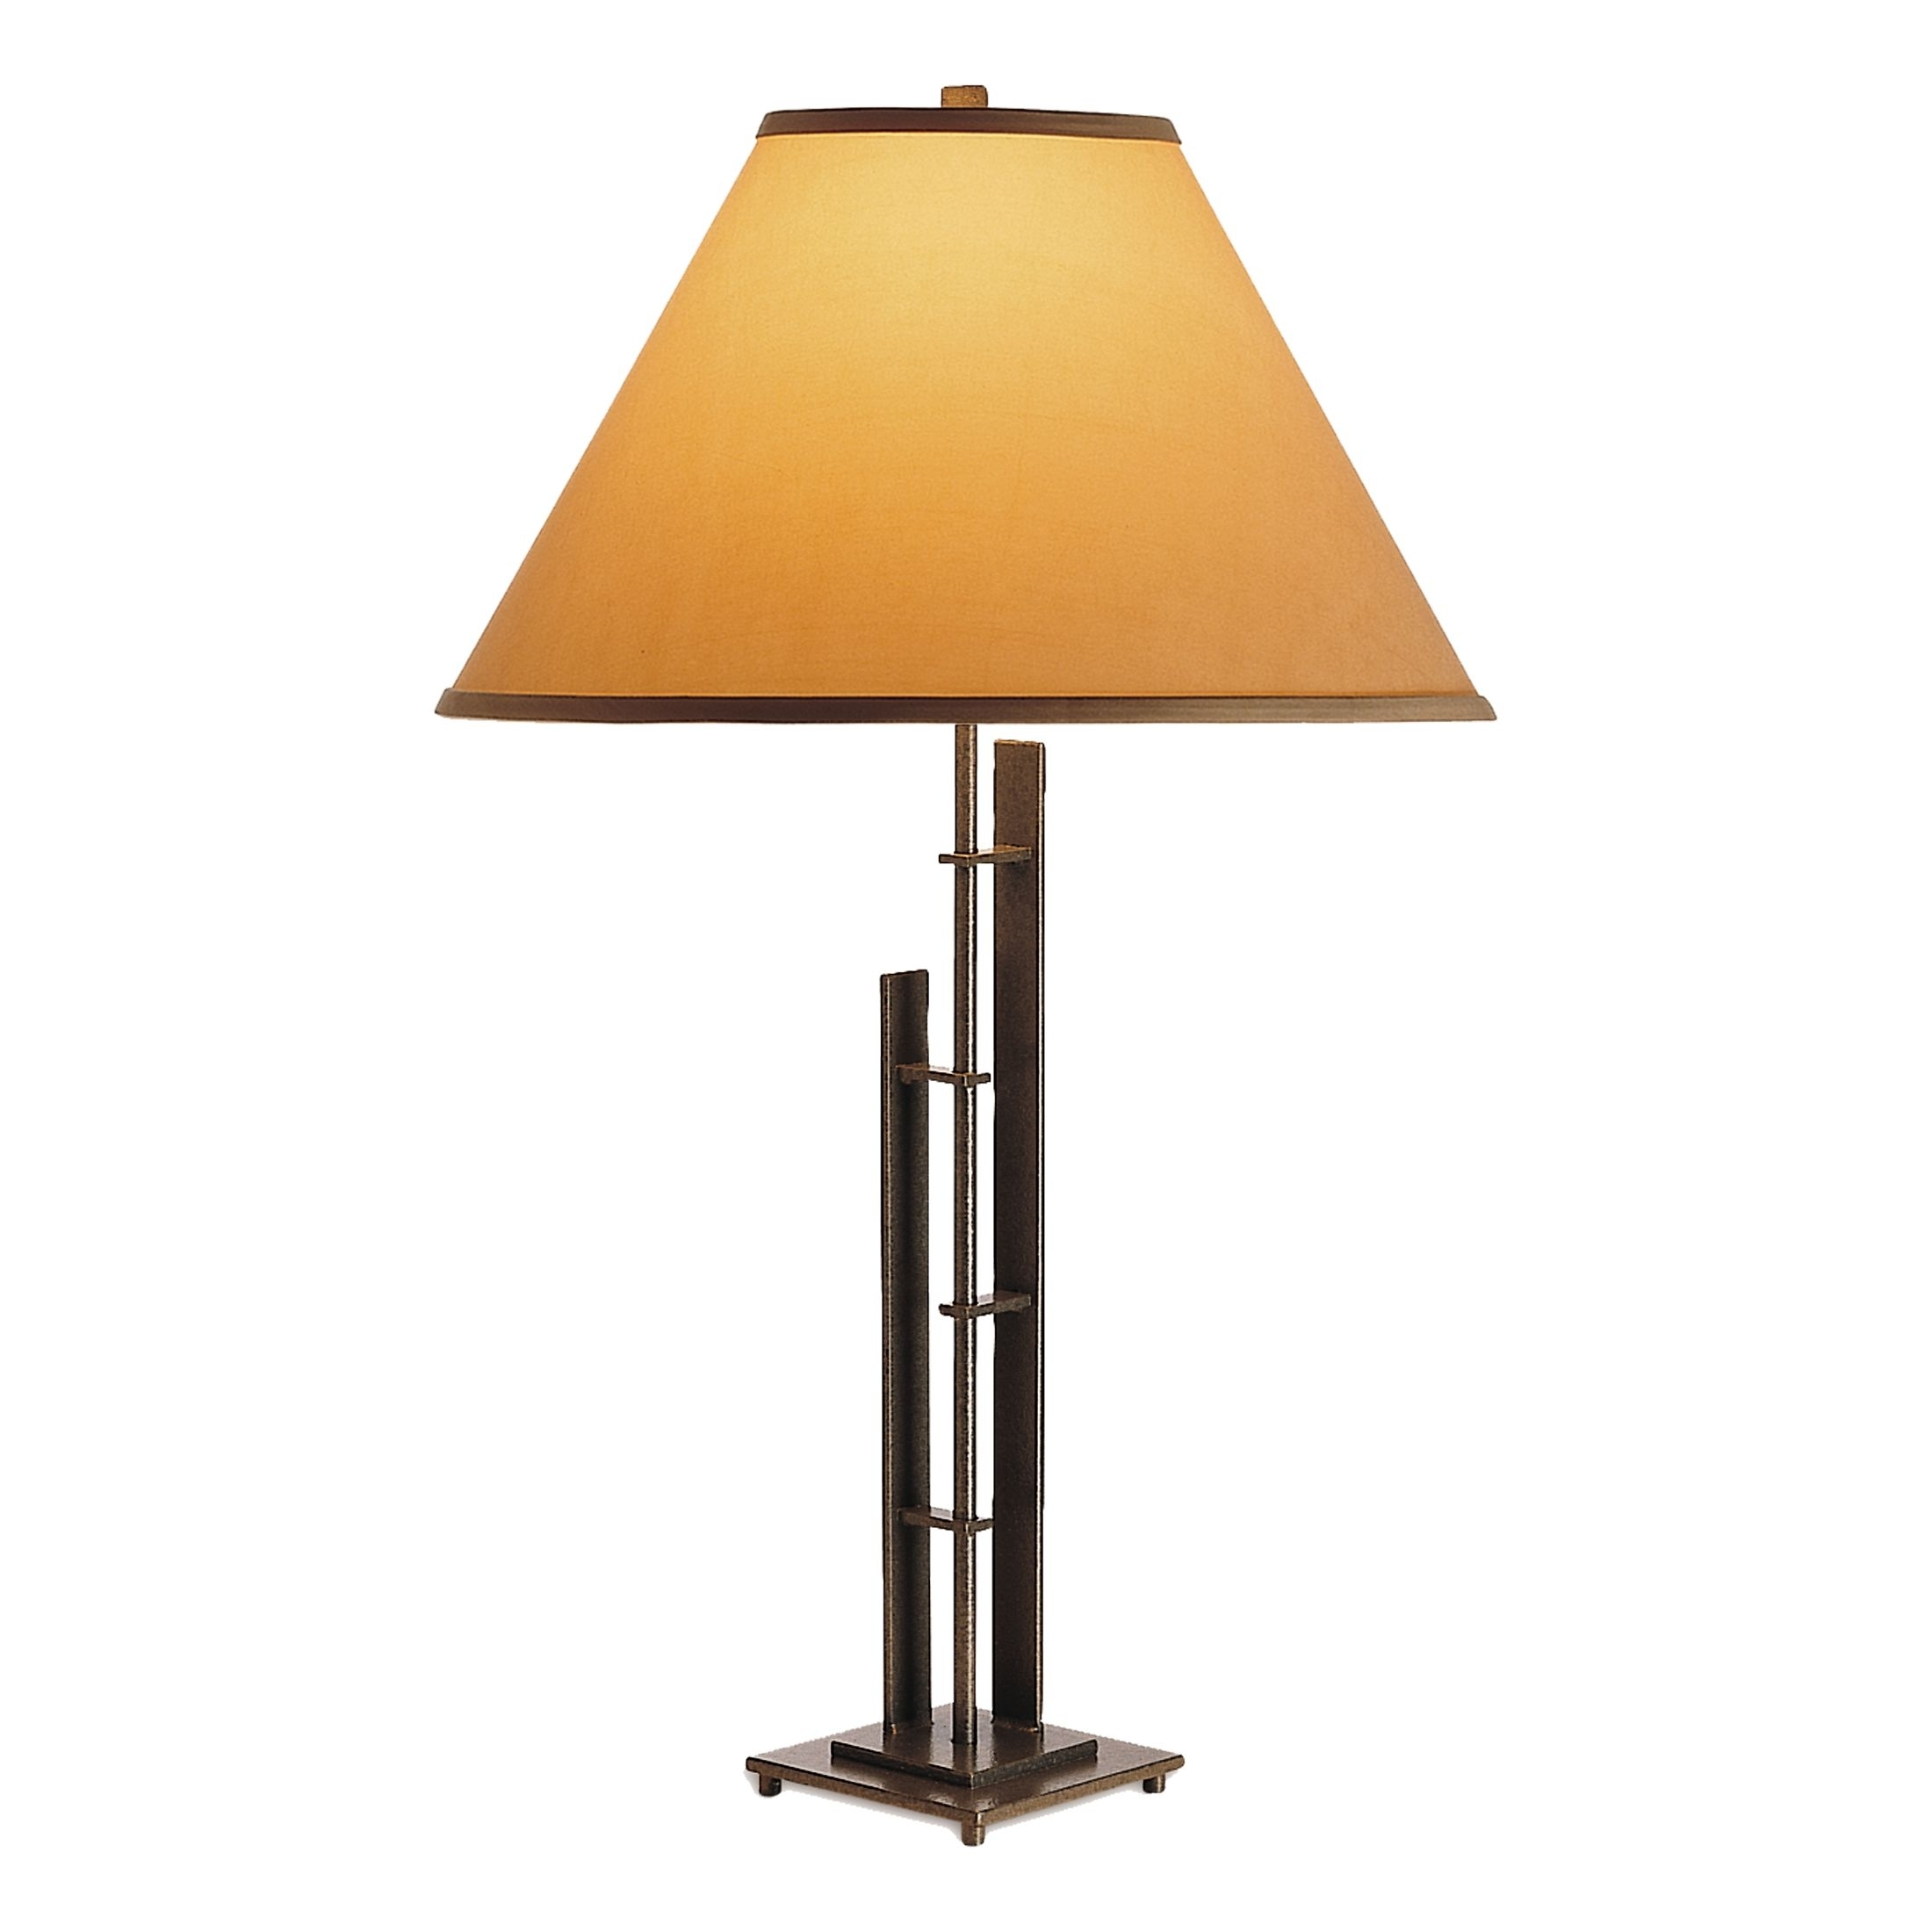 Lamp : Samples Image Iron Table Lamps Images Inspirations Black Pertaining To Wrought Iron Living Room Table Lamps (#7 of 15)